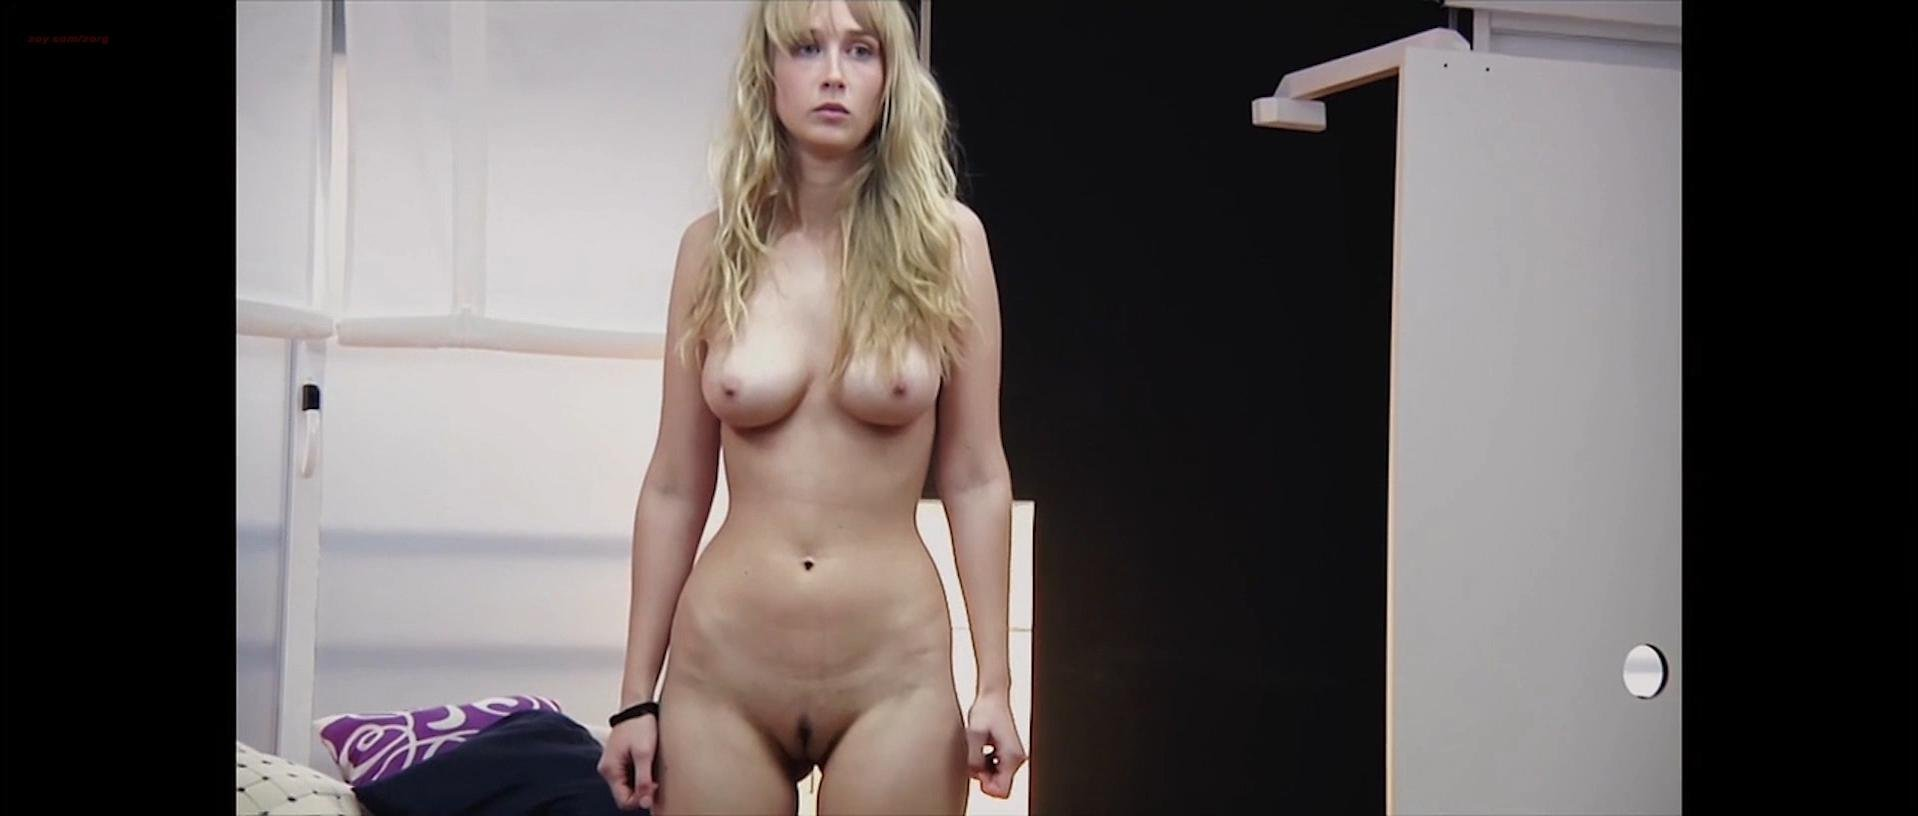 Ingrid Garcia Jonsson nude - Beautiful Youth (2014)